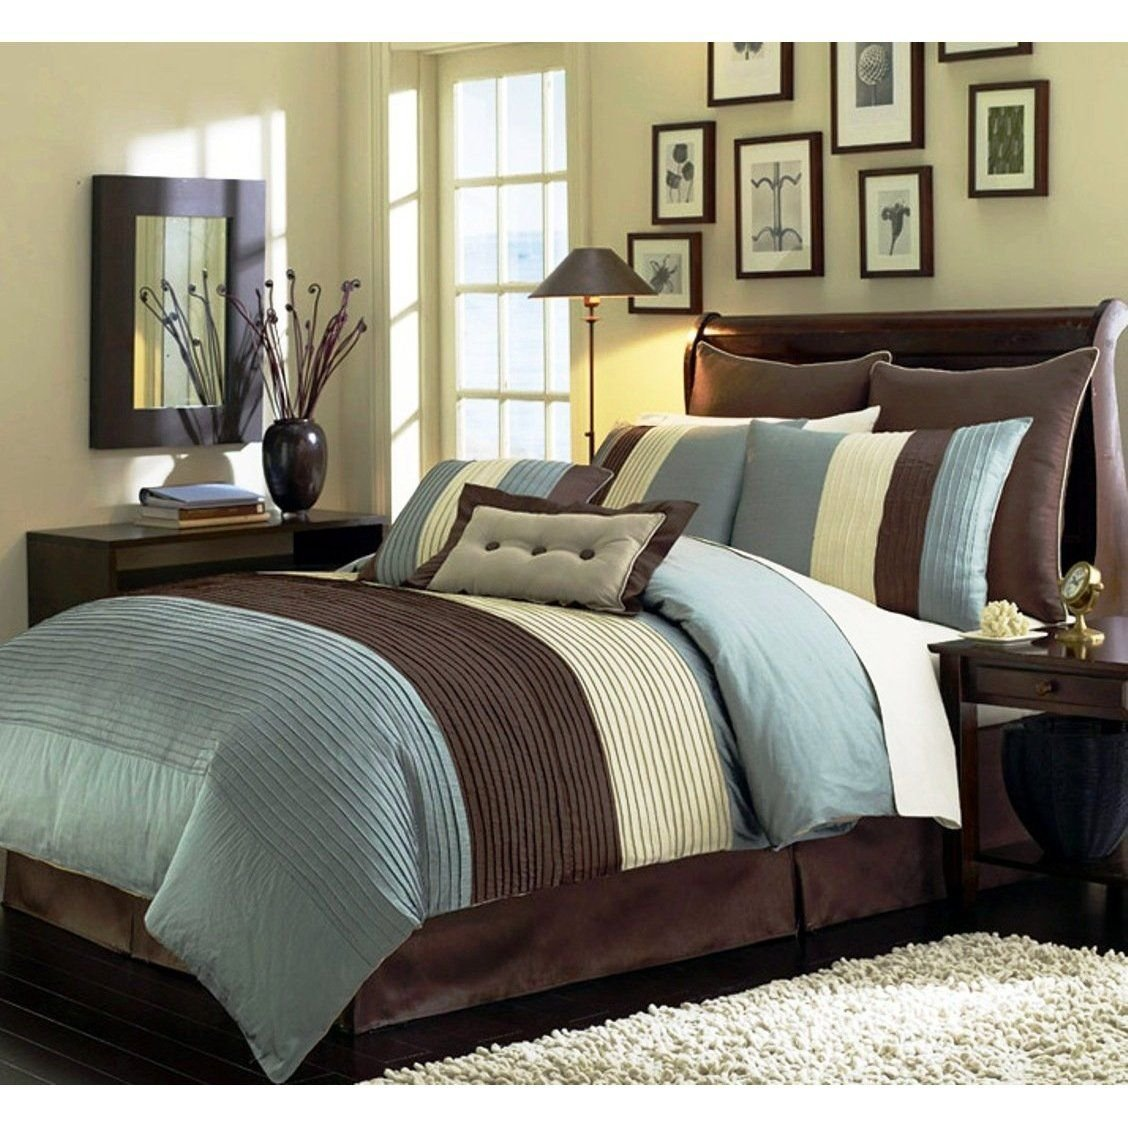 Amazoncom 8 Pieces Beige Blue and Brown Stripe Comforter 104x92